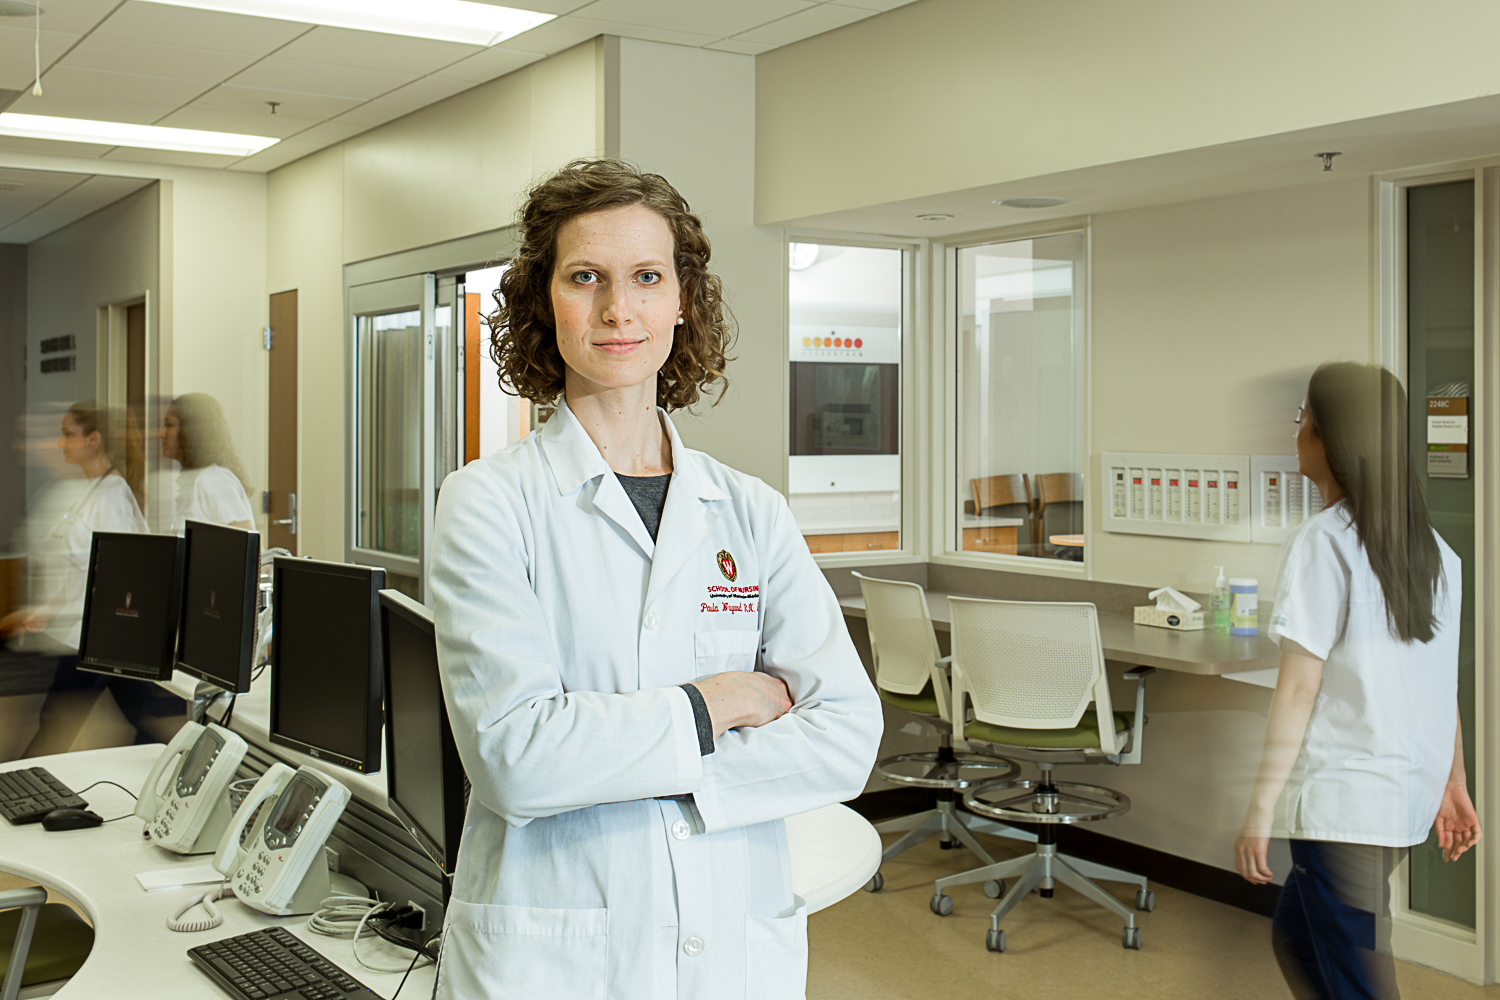 portrait of a UW hospital doctor